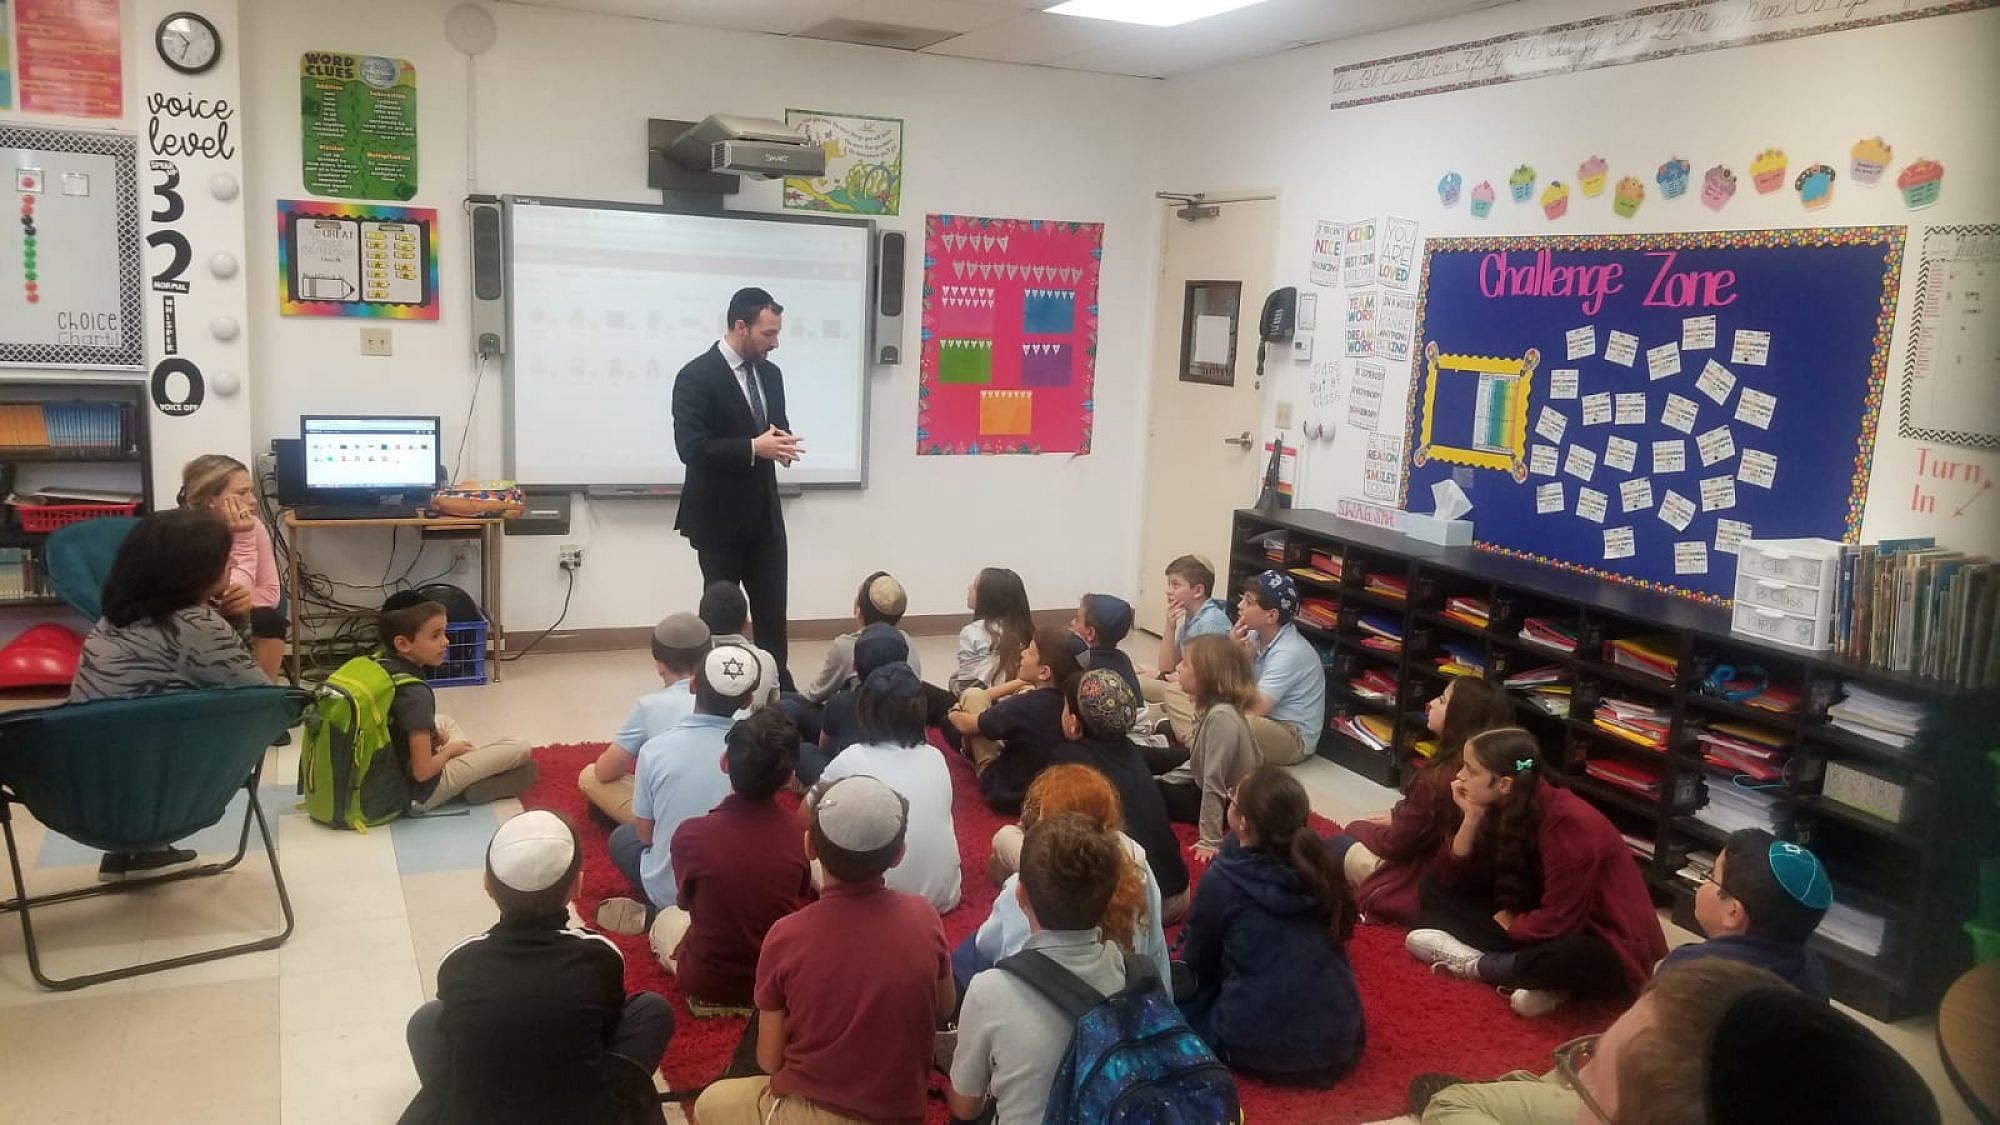 Rabbi Dr. Ari Sytner, a crisis-response counselor and director of community initiatives at Yeshiva University, provides San Diego-area Jewish day-school students with on-the-ground counseling following the shooting at Chabad of Poway in Southern Caliornia on April 27, 2019. Credit: Courtesy.